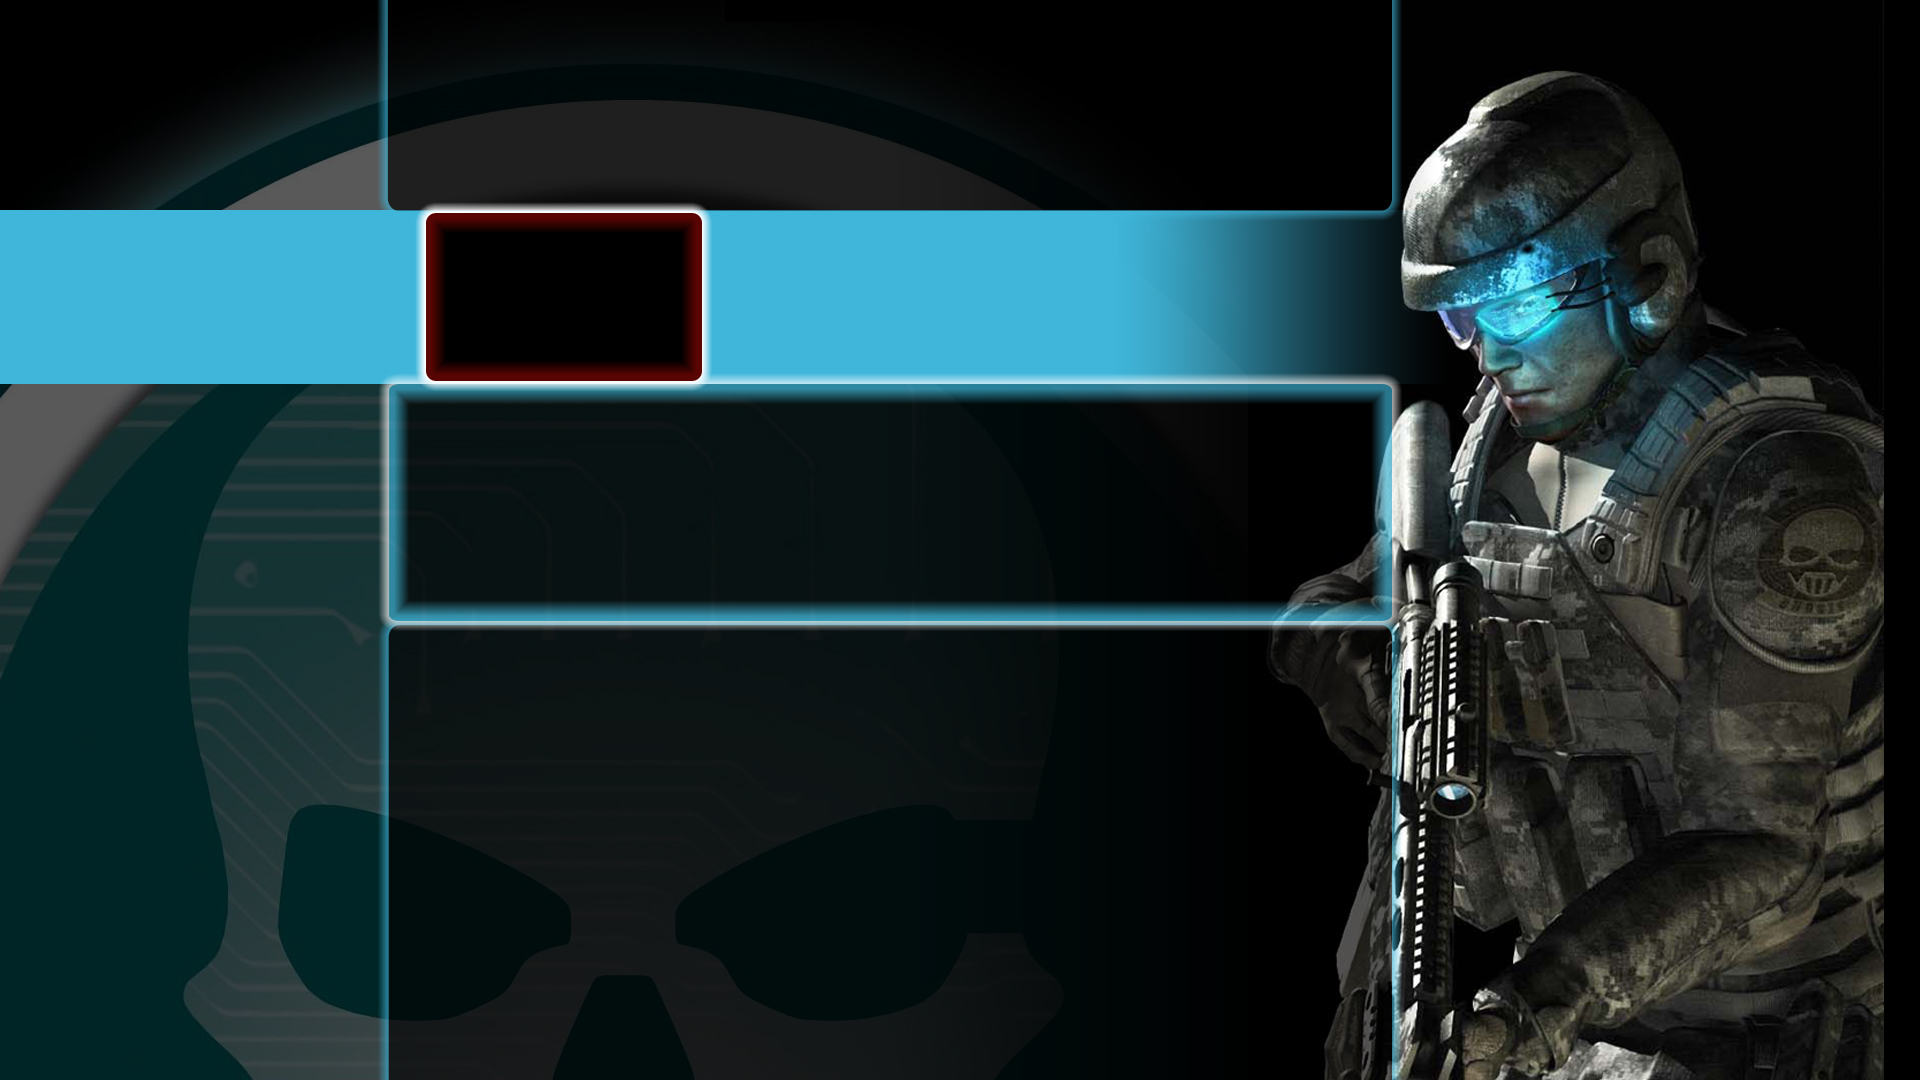 Ghost Recon Advanced Warfighter Wallpapers